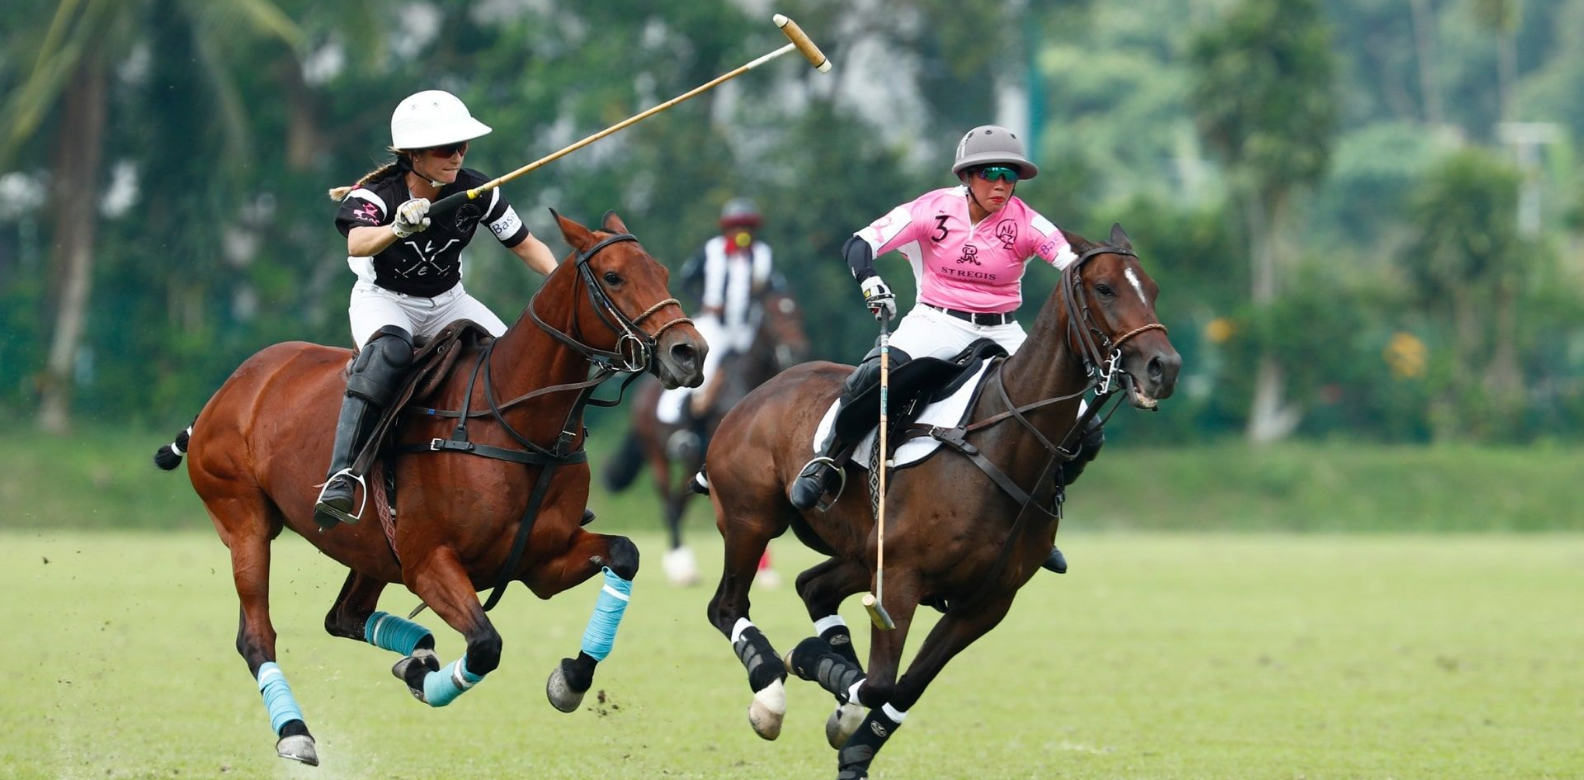 Lia Salvo of Le Tu Polo Team vs Princess Azemah Ni'matul Bolkiah of The St Regis Polo Team